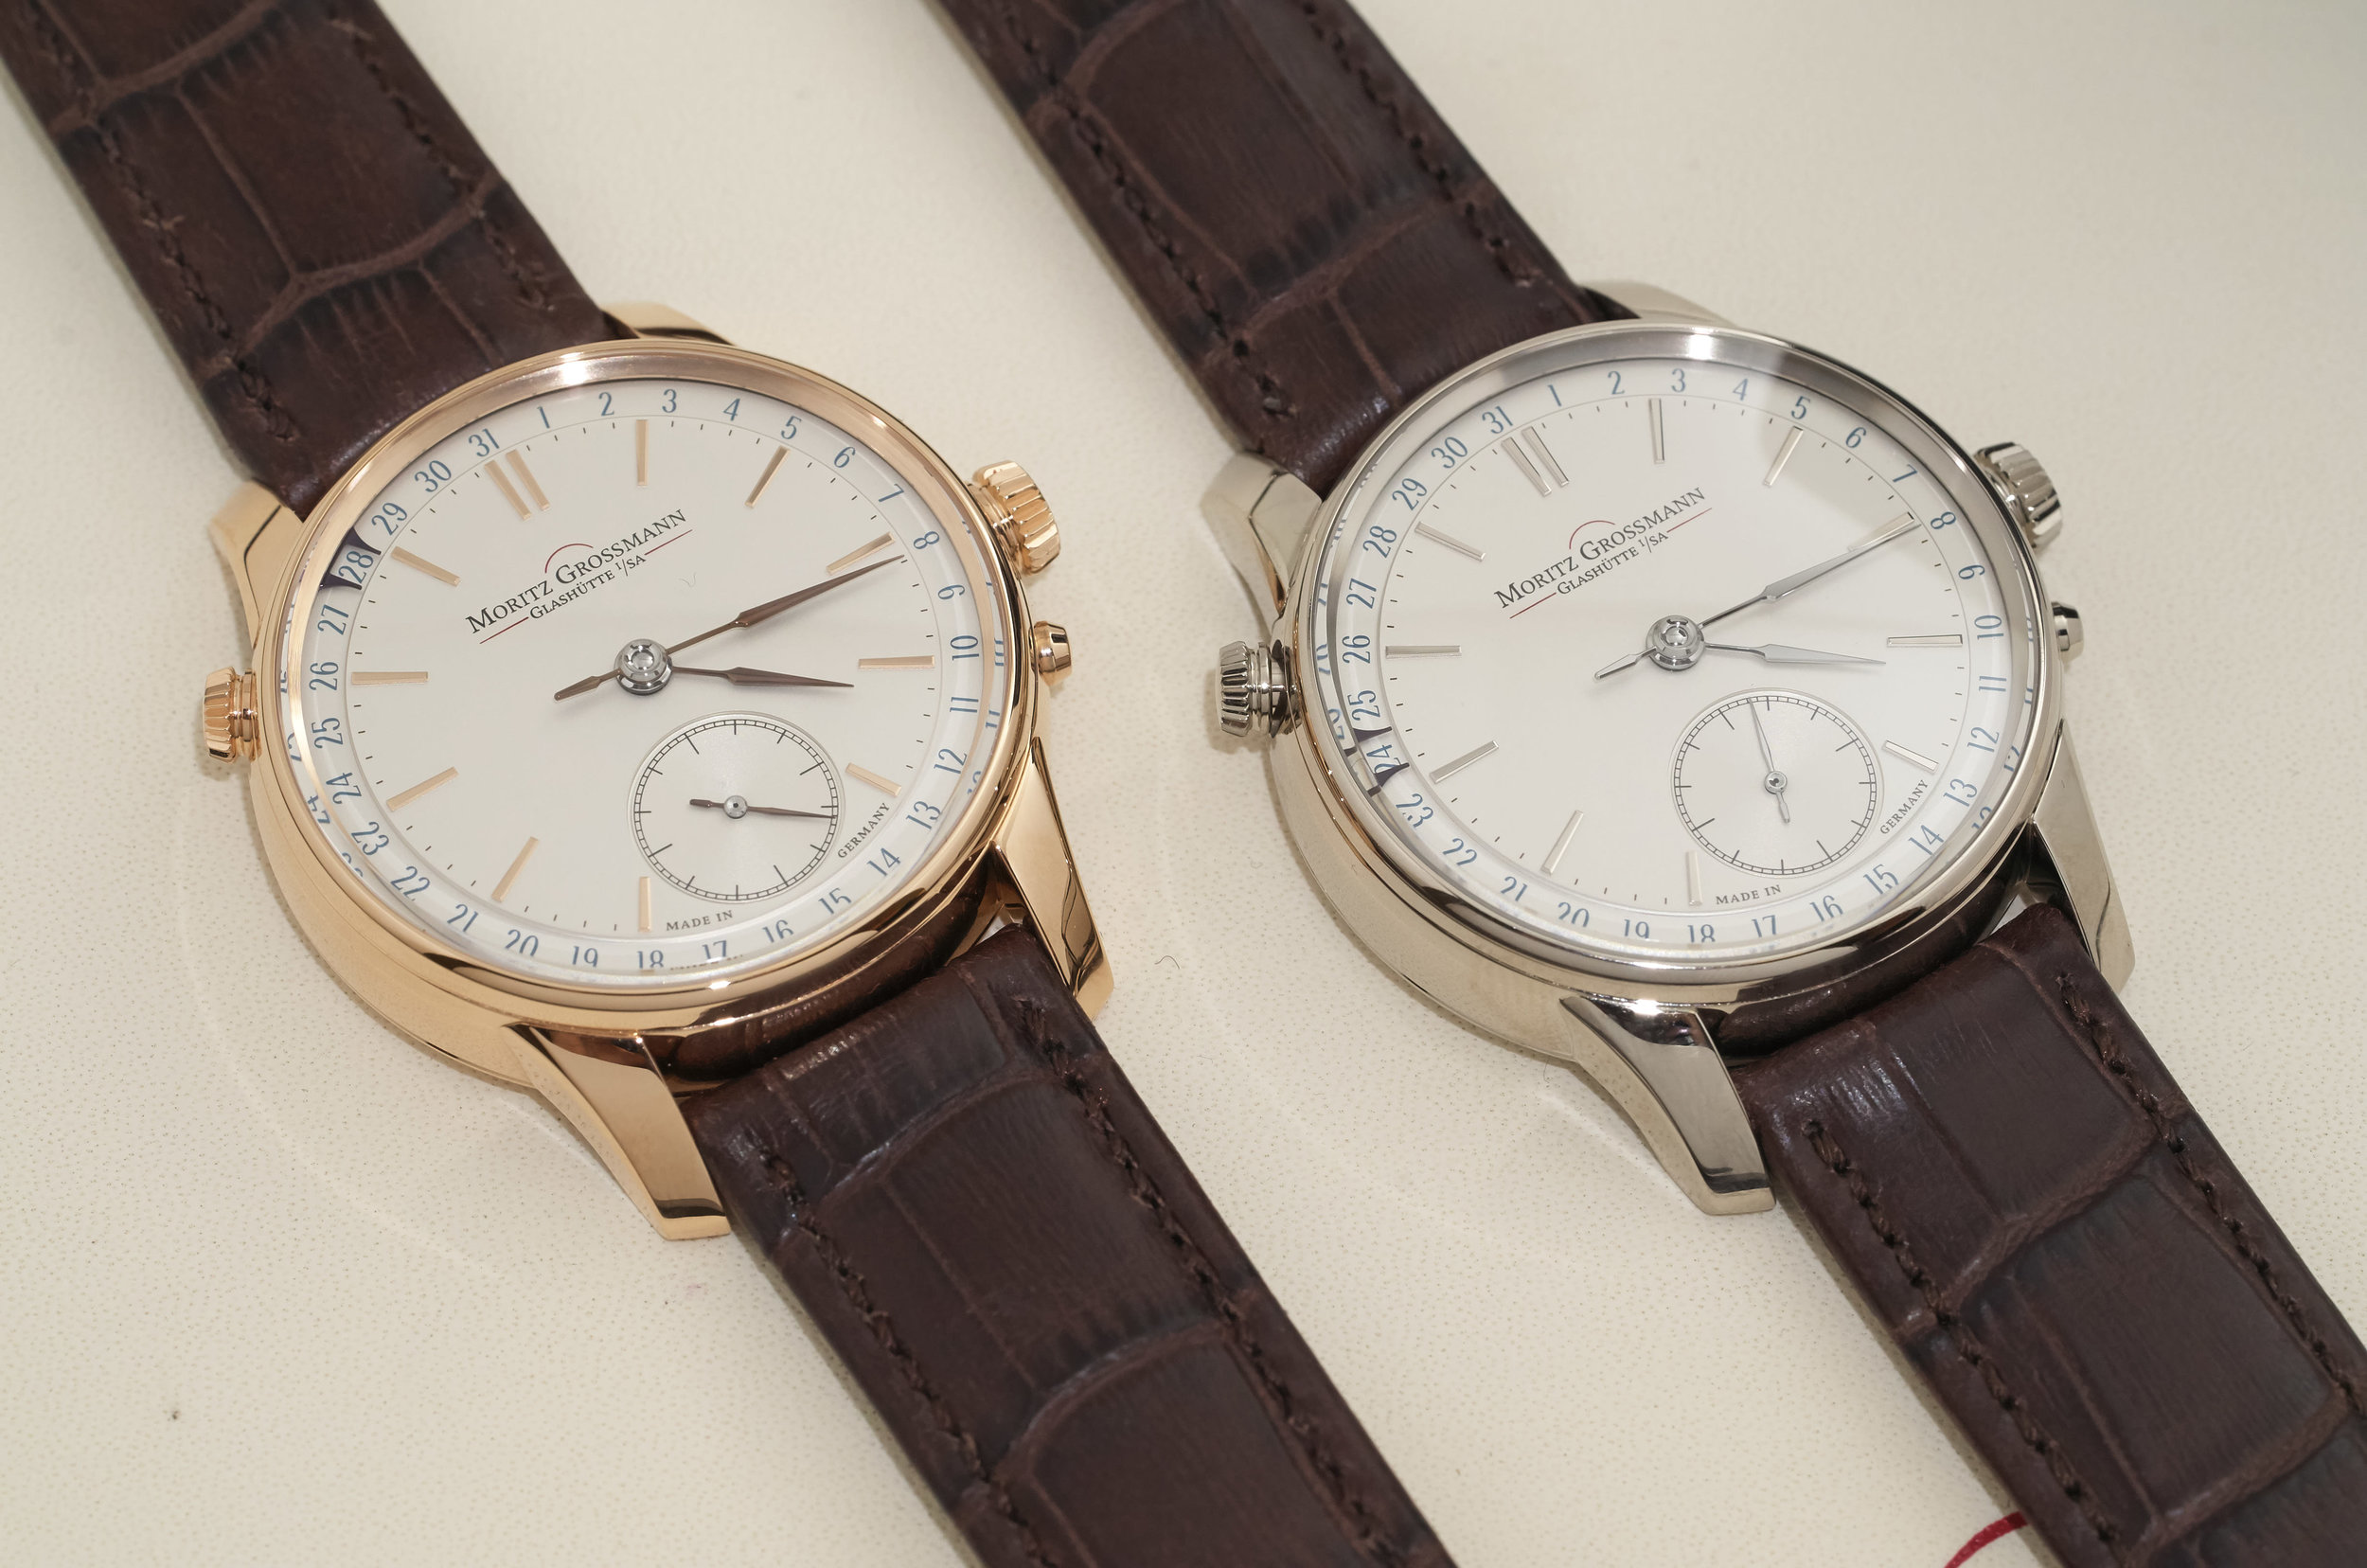 Moritz Grossmann Atum Date in rose gold and white gold